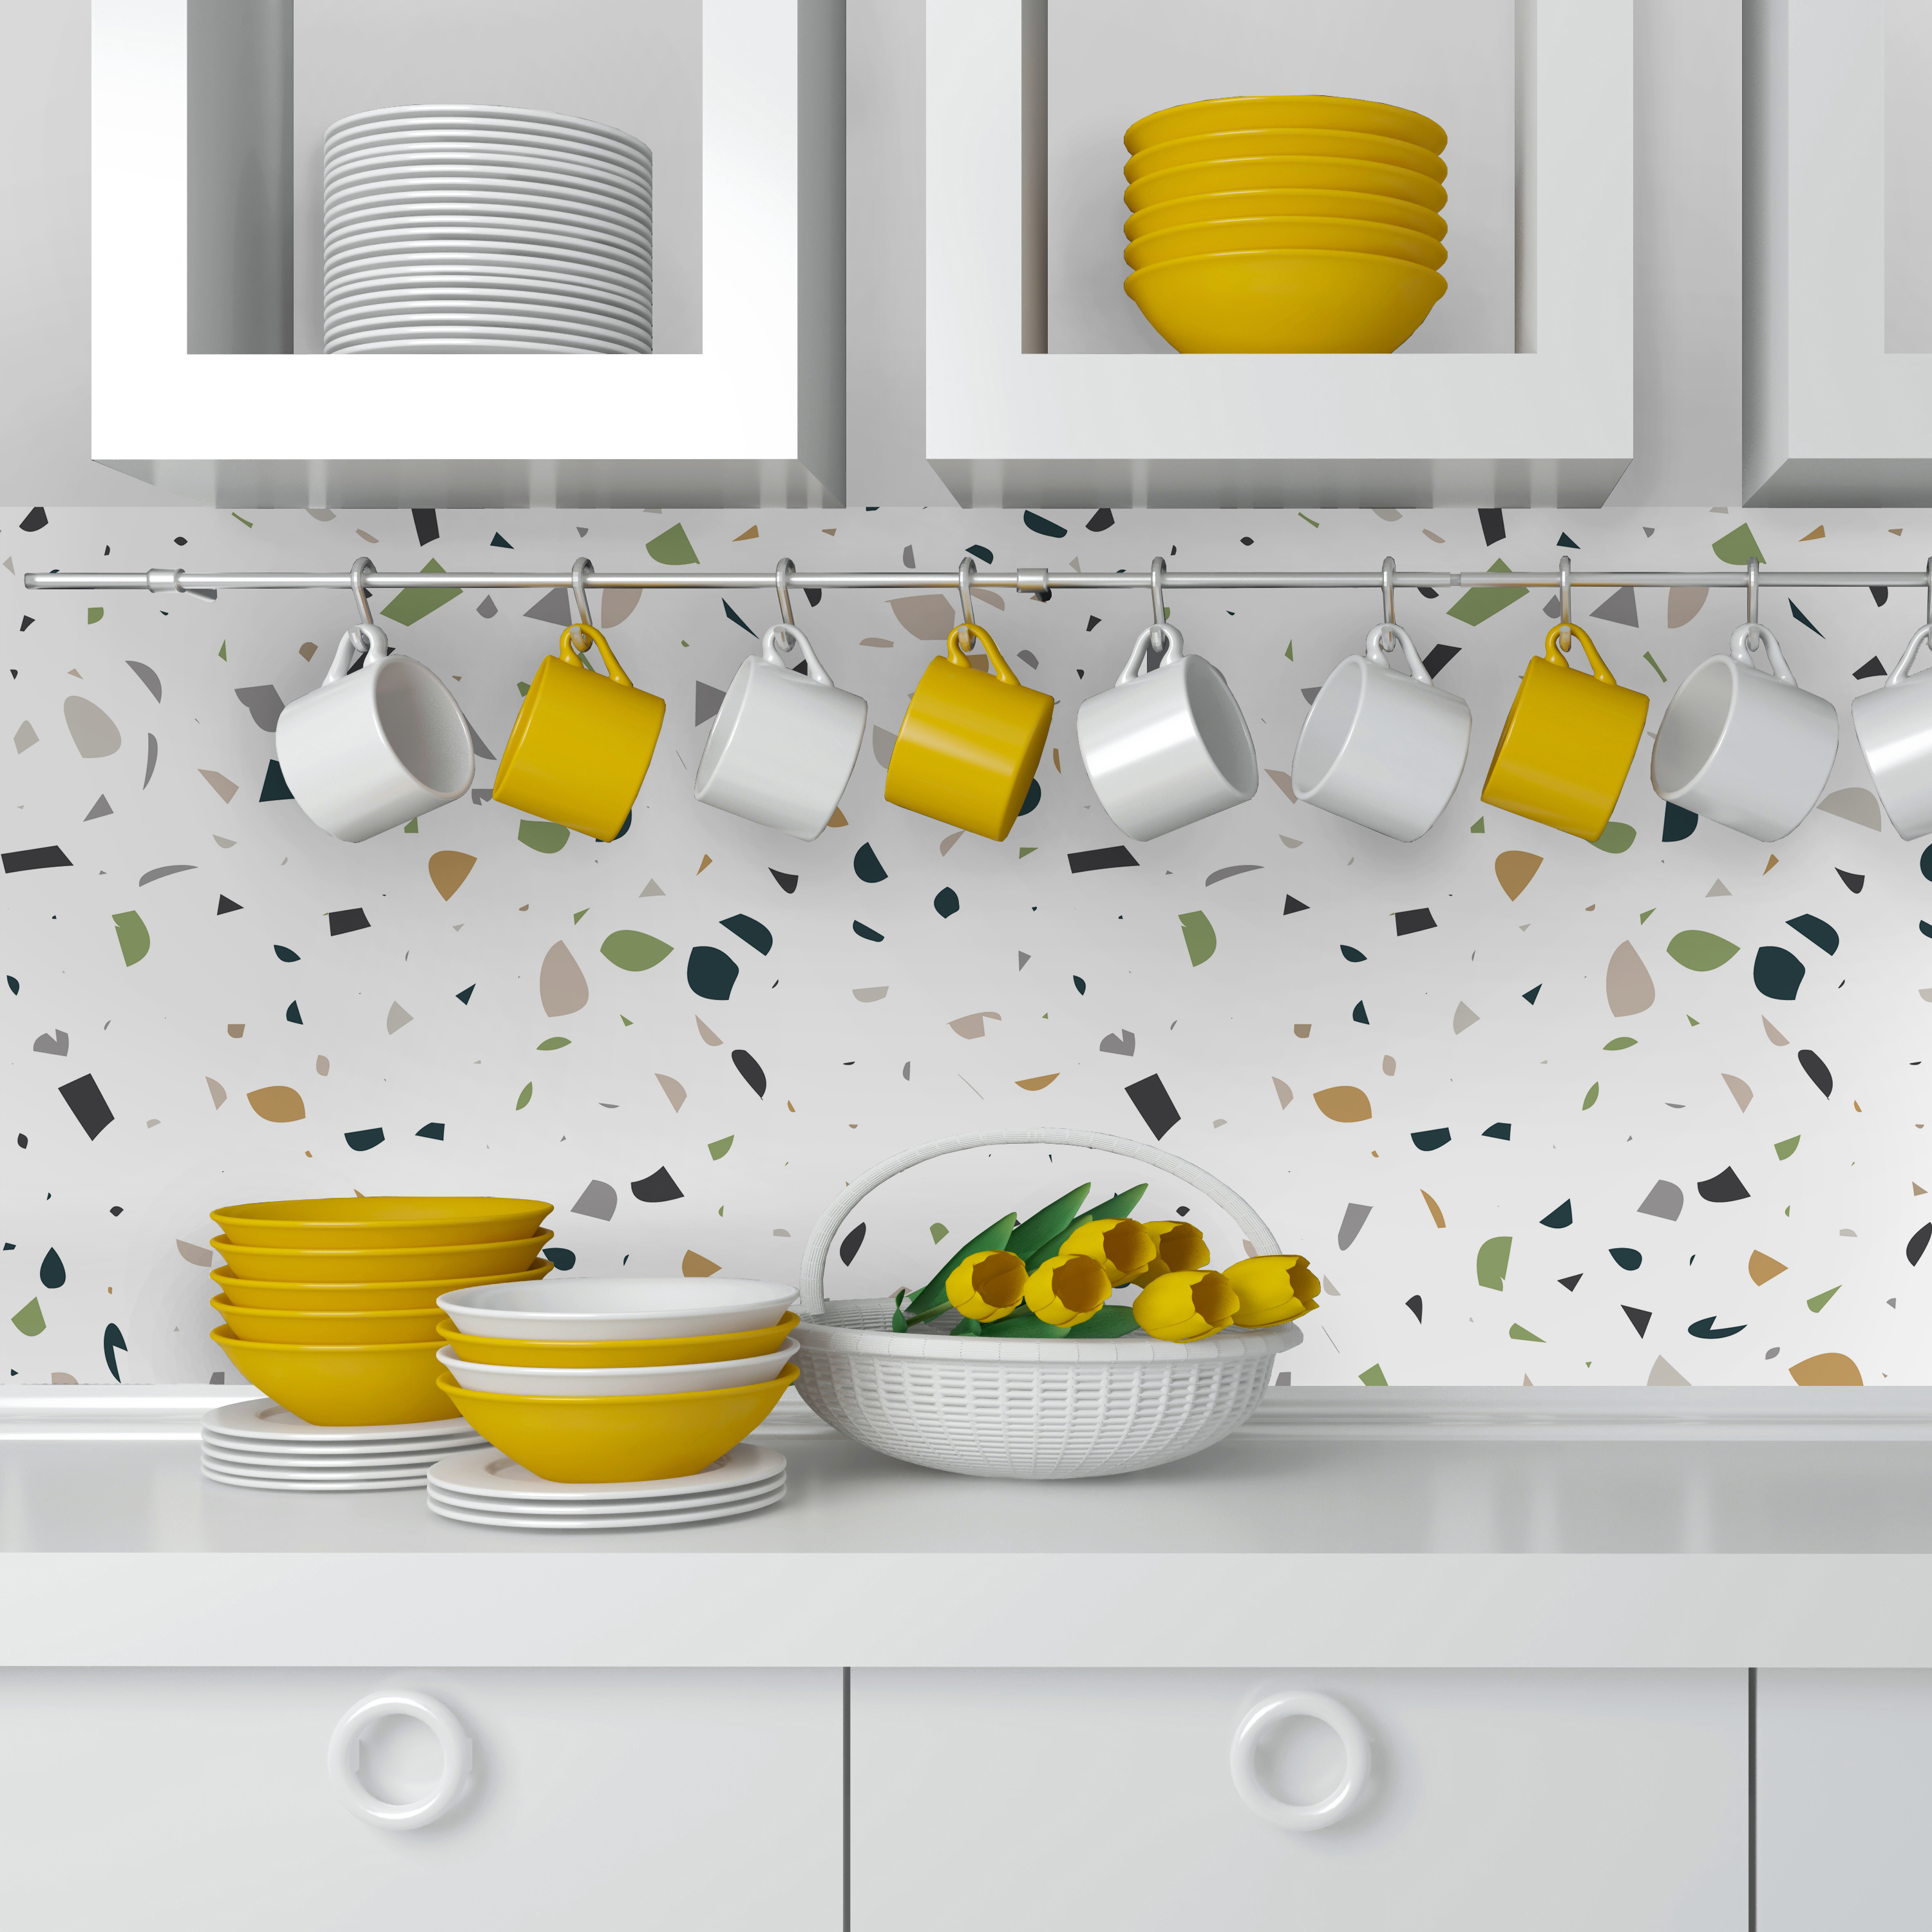 terrazzo credence cuisine couleur